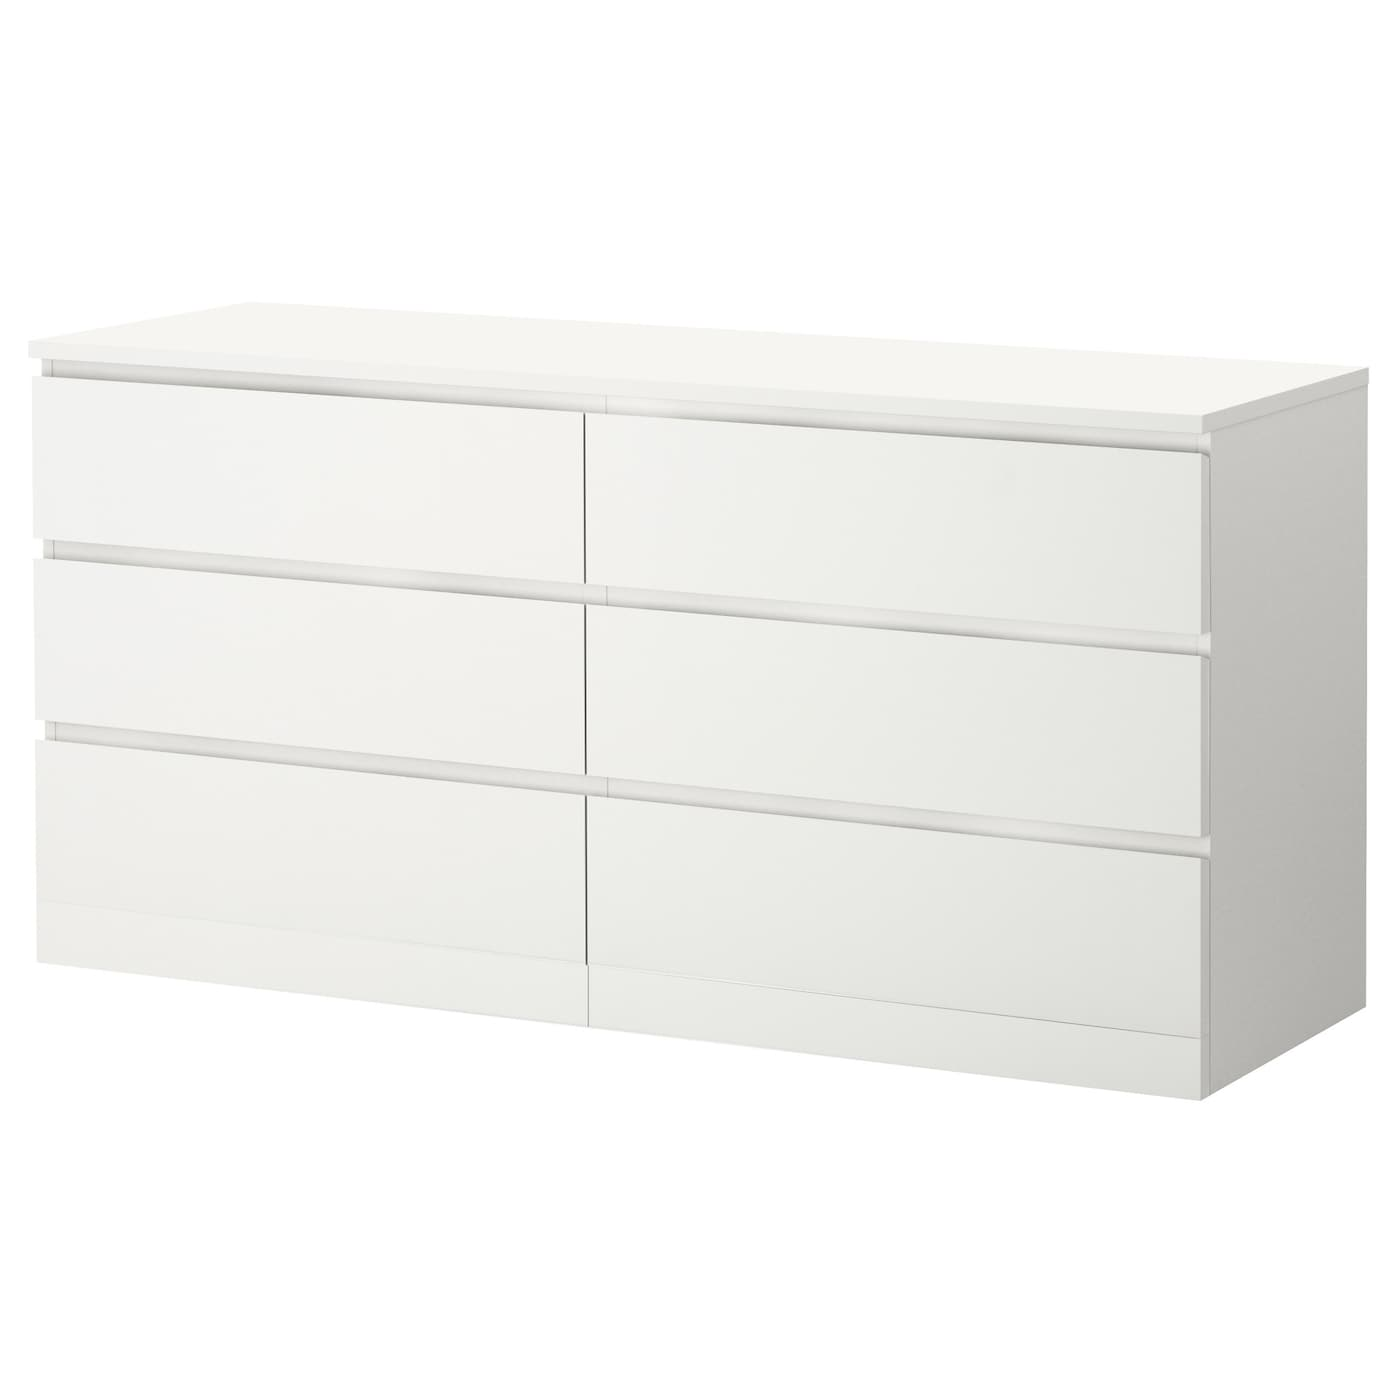 MALM 3-drawer dresser - white 33x3 3/3 ""